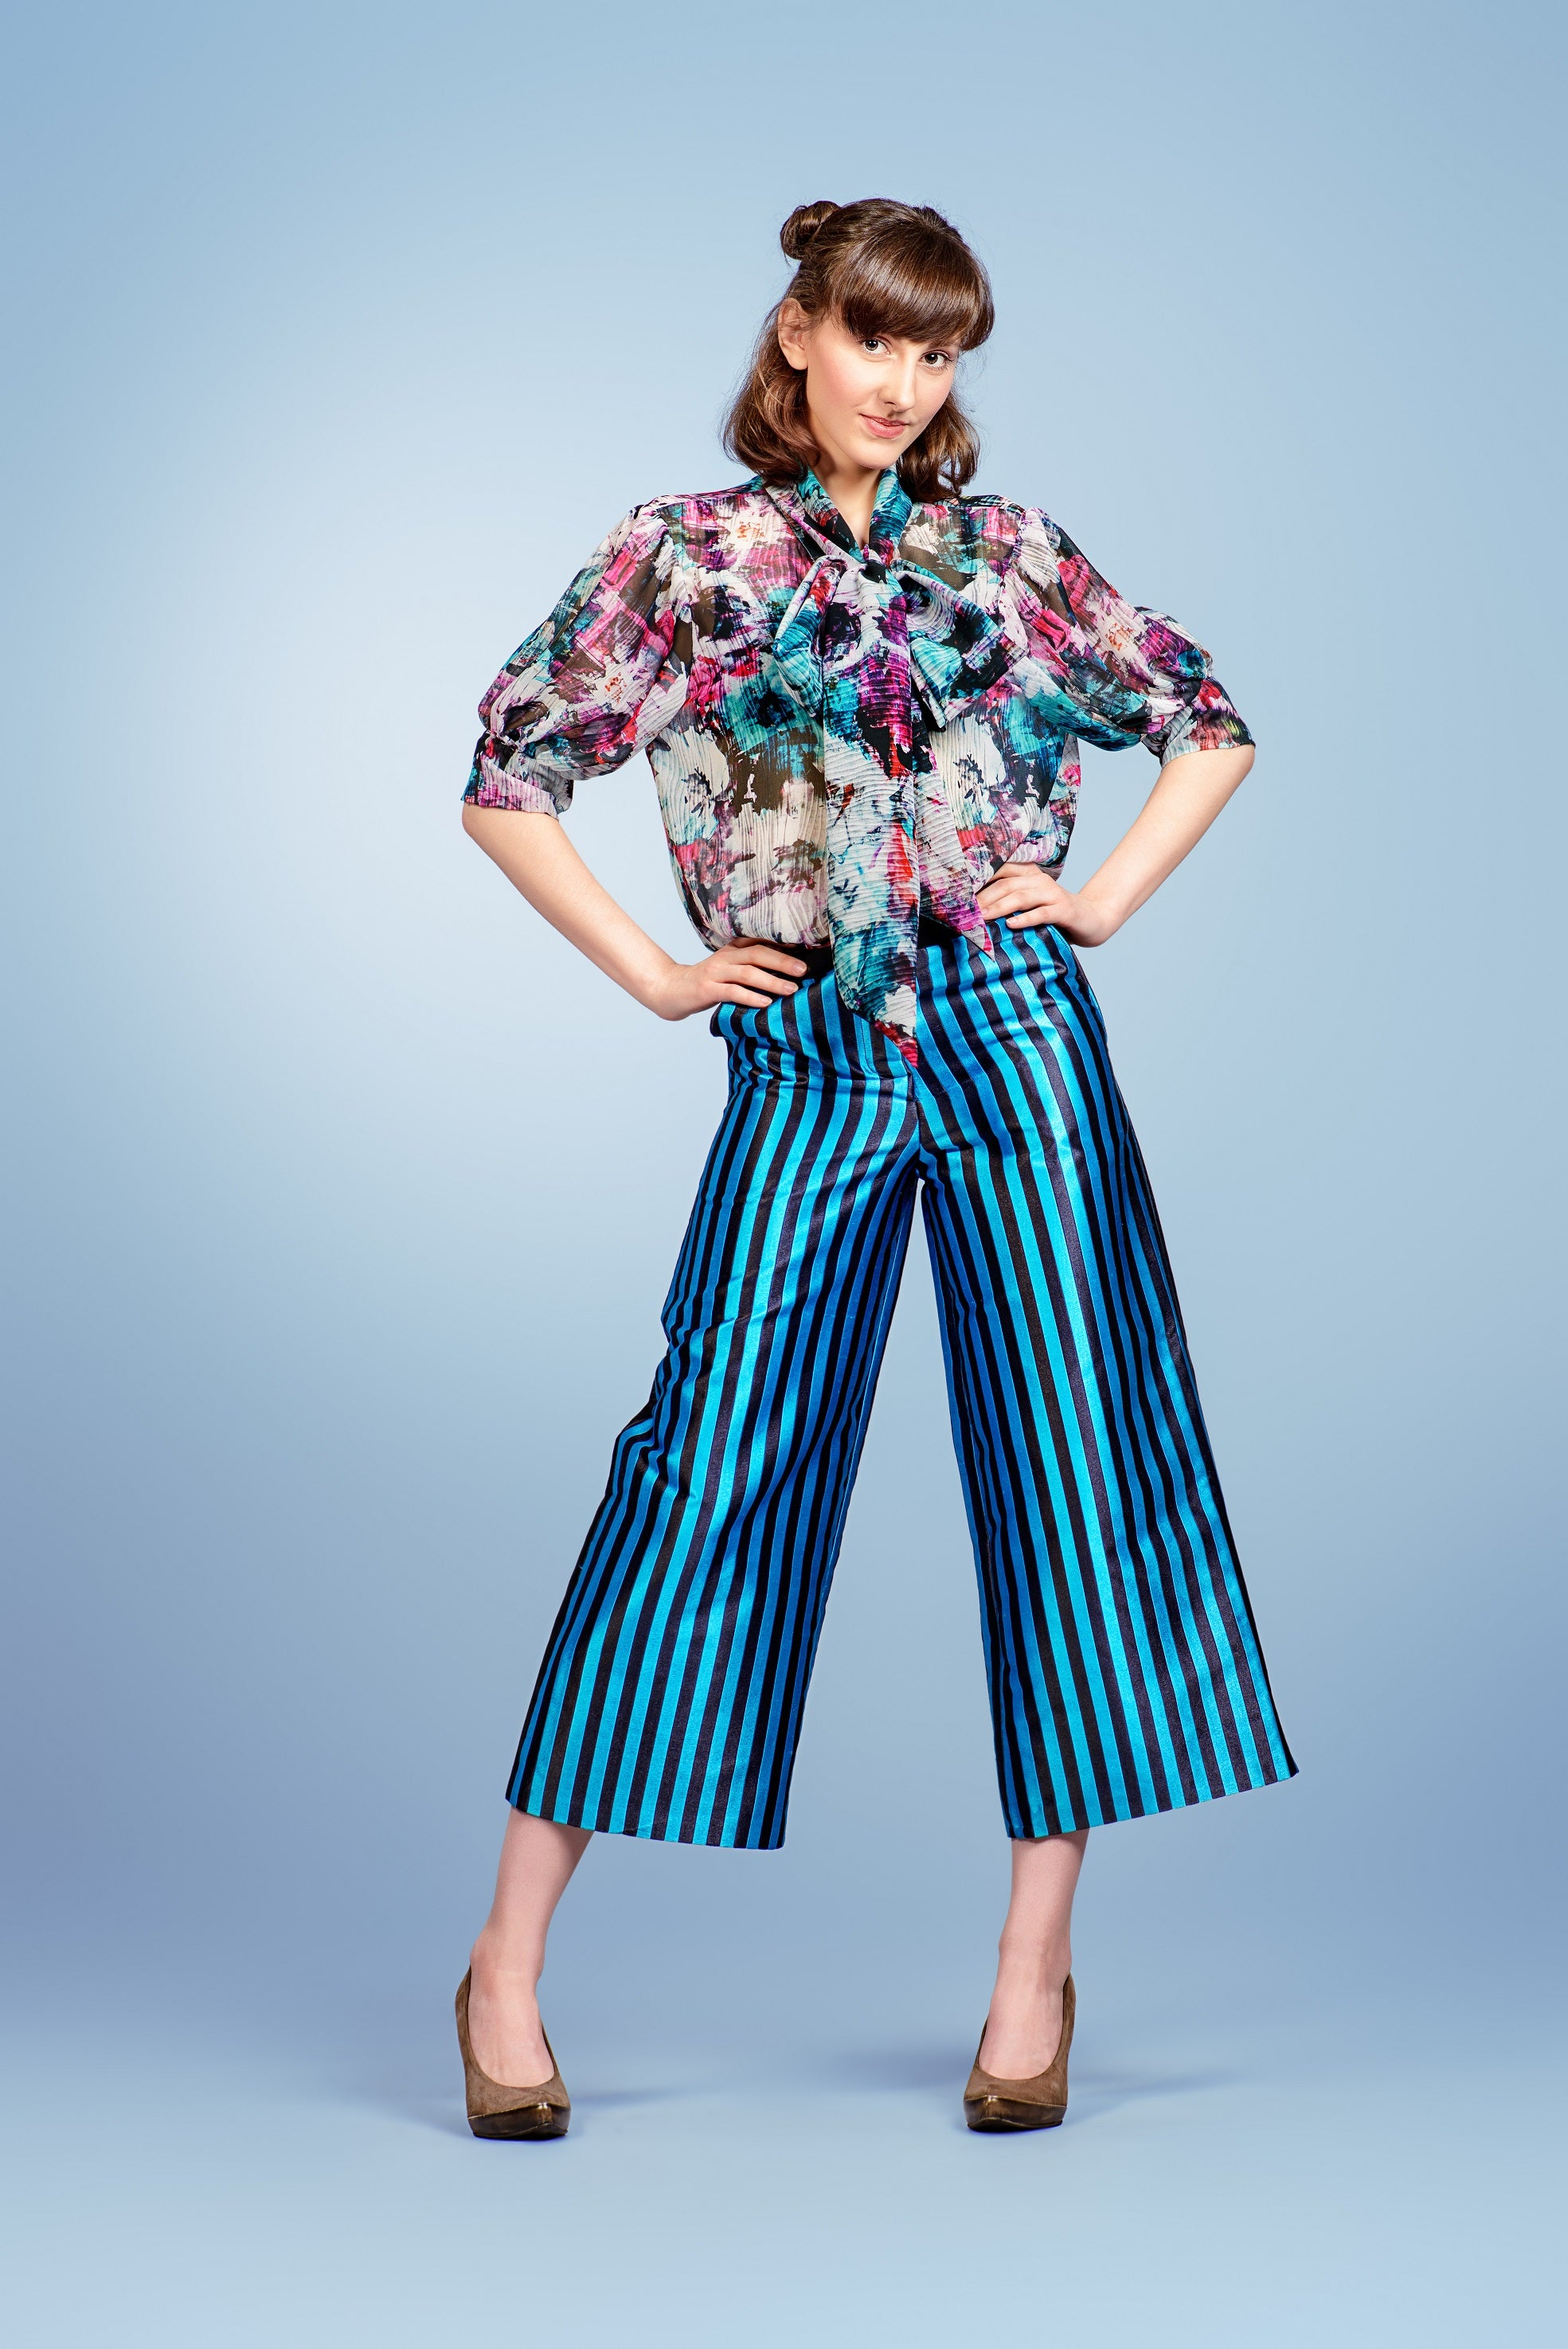 Floral top and stripe bottom pattern mix